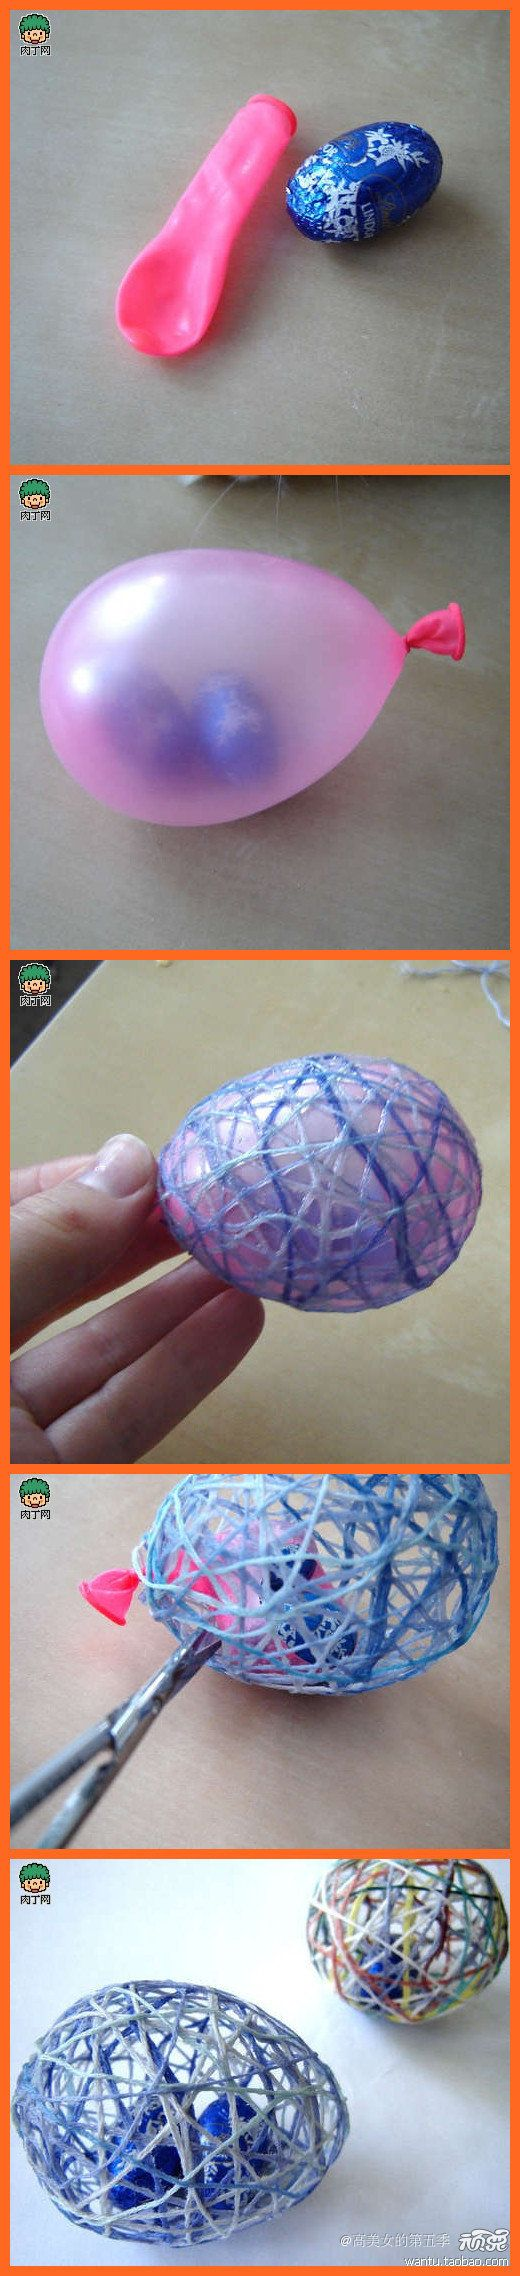 Easter egg with candy inside - I dont think I will ever